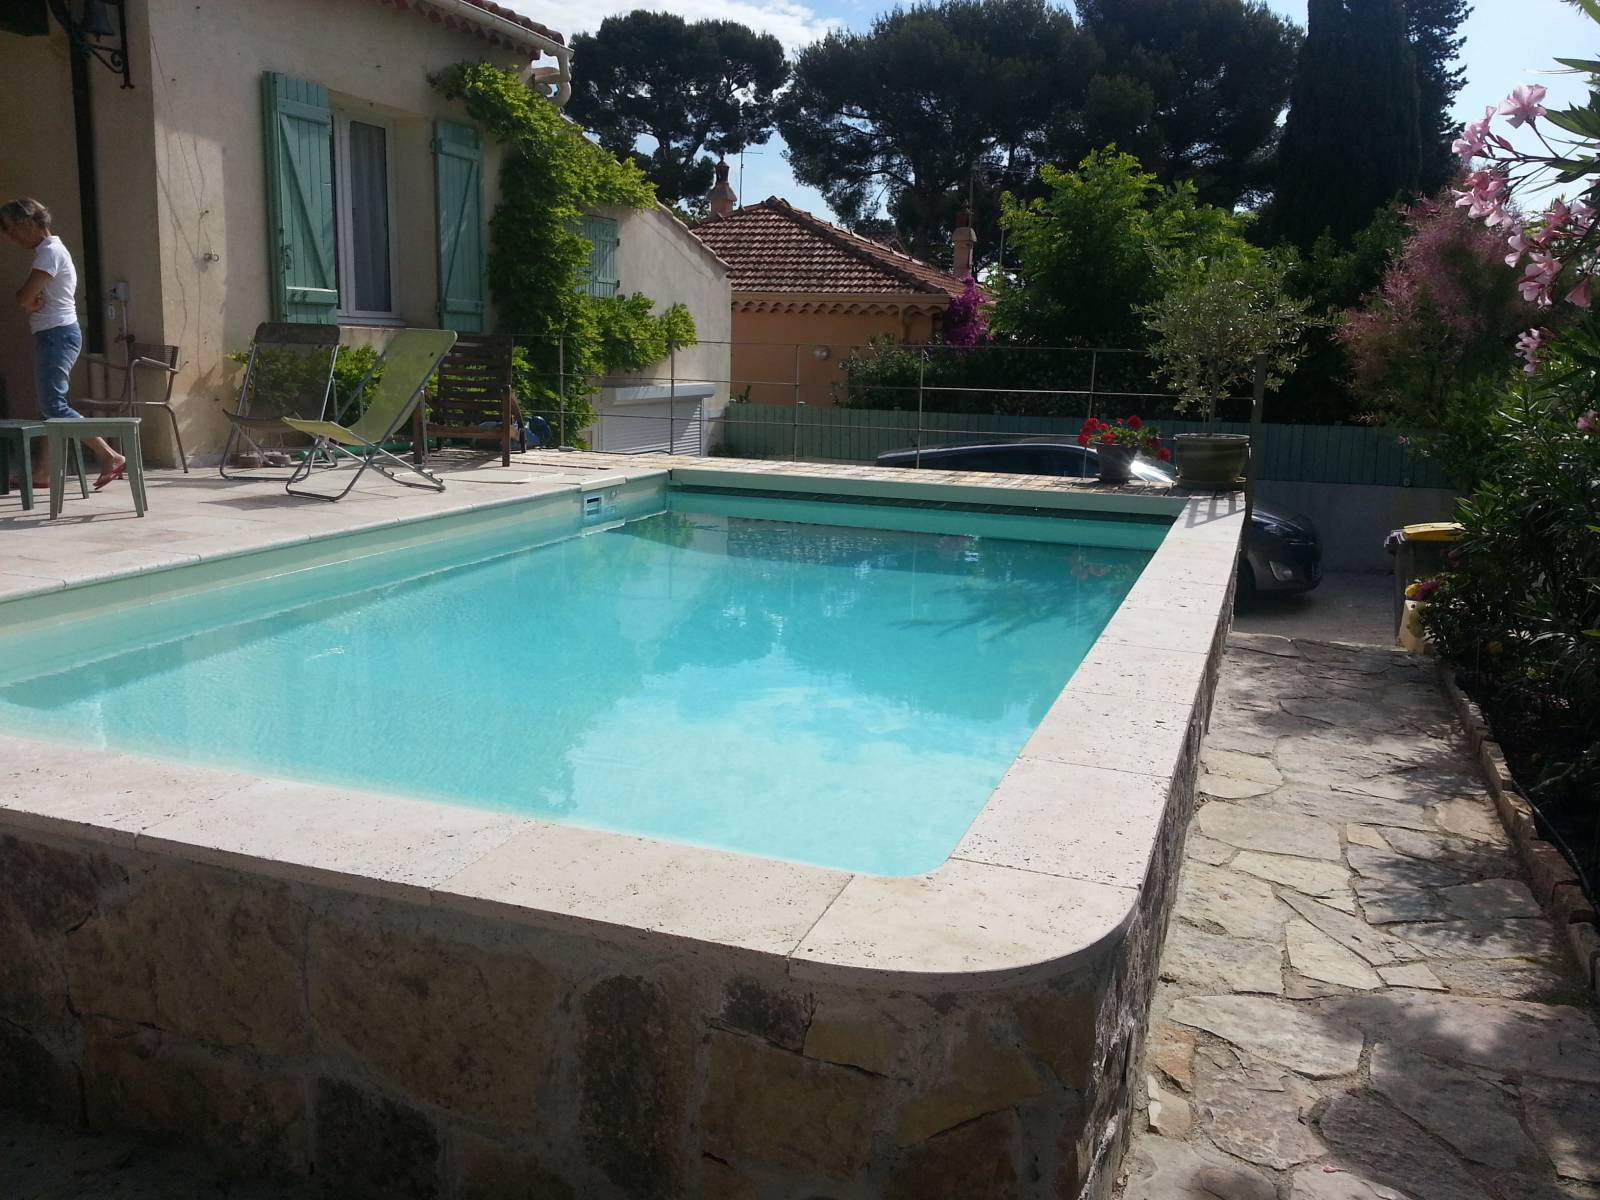 Prix piscine beton 8x4 prix coque piscine 8x4 photos que for Tarif construction piscine